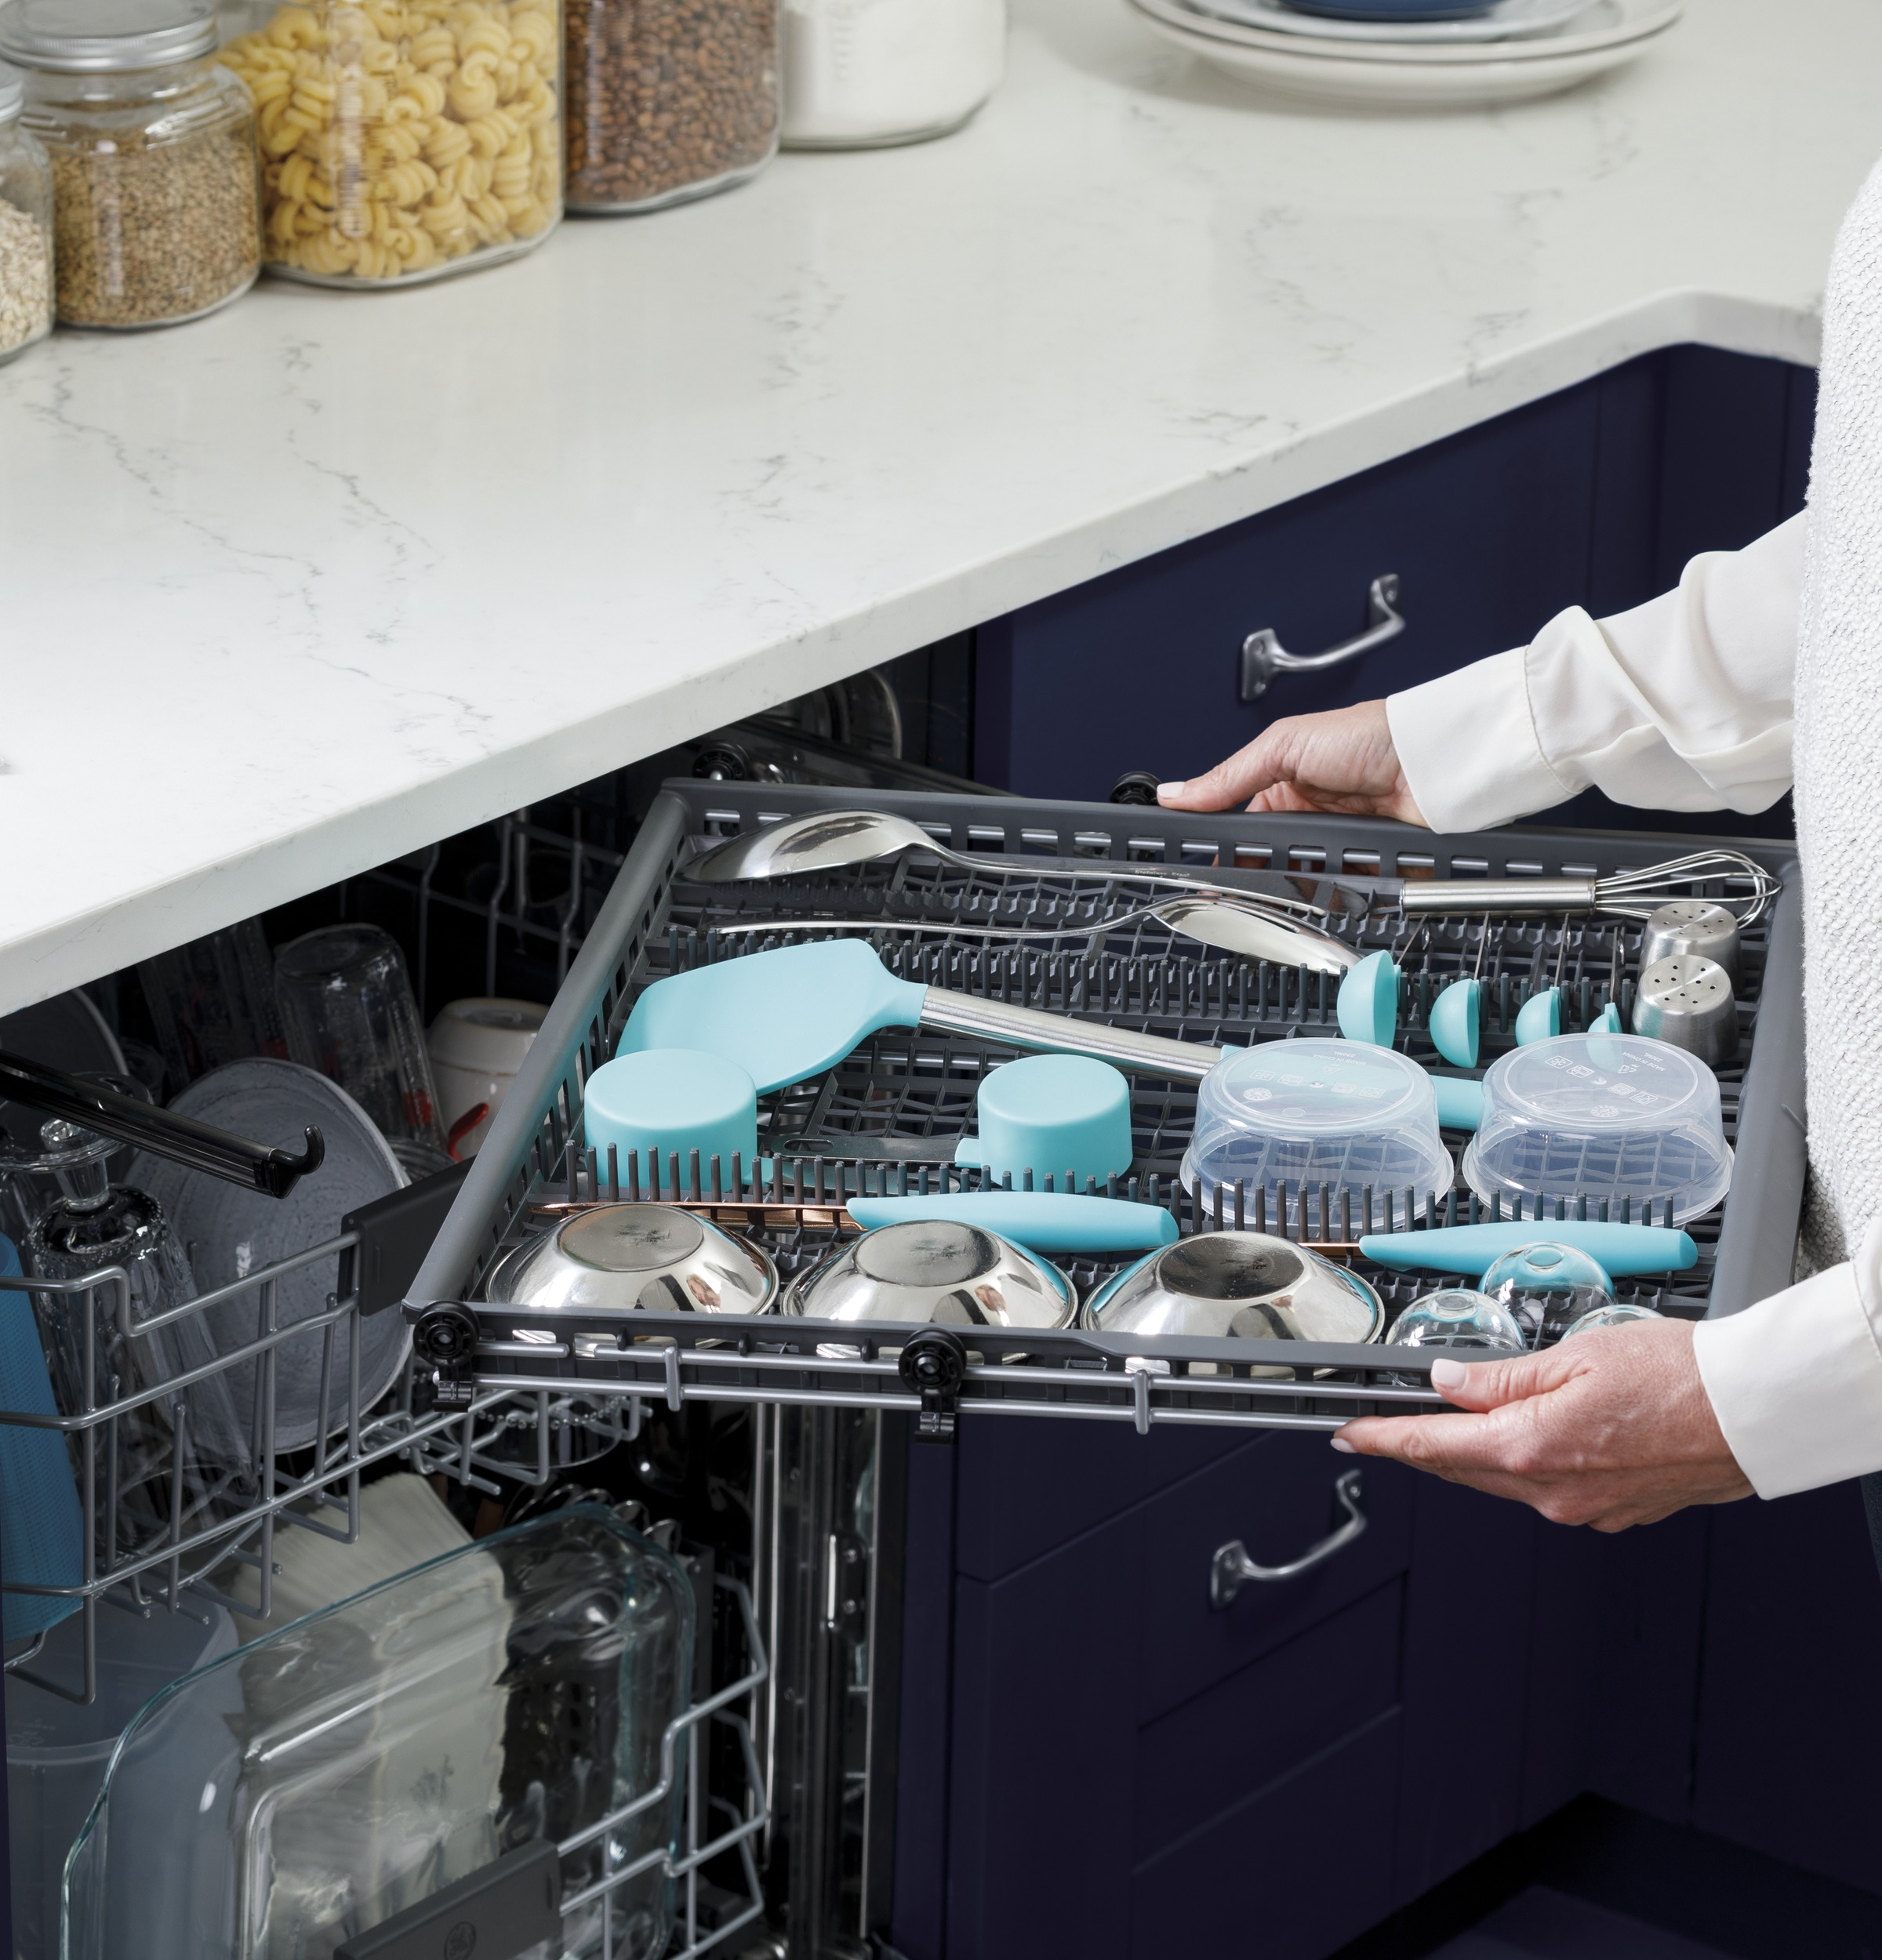 Model: GDT665SGNWW | GE GE® Top Control with Stainless Steel Interior Dishwasher with Sanitize Cycle & Dry Boost with Fan Assist